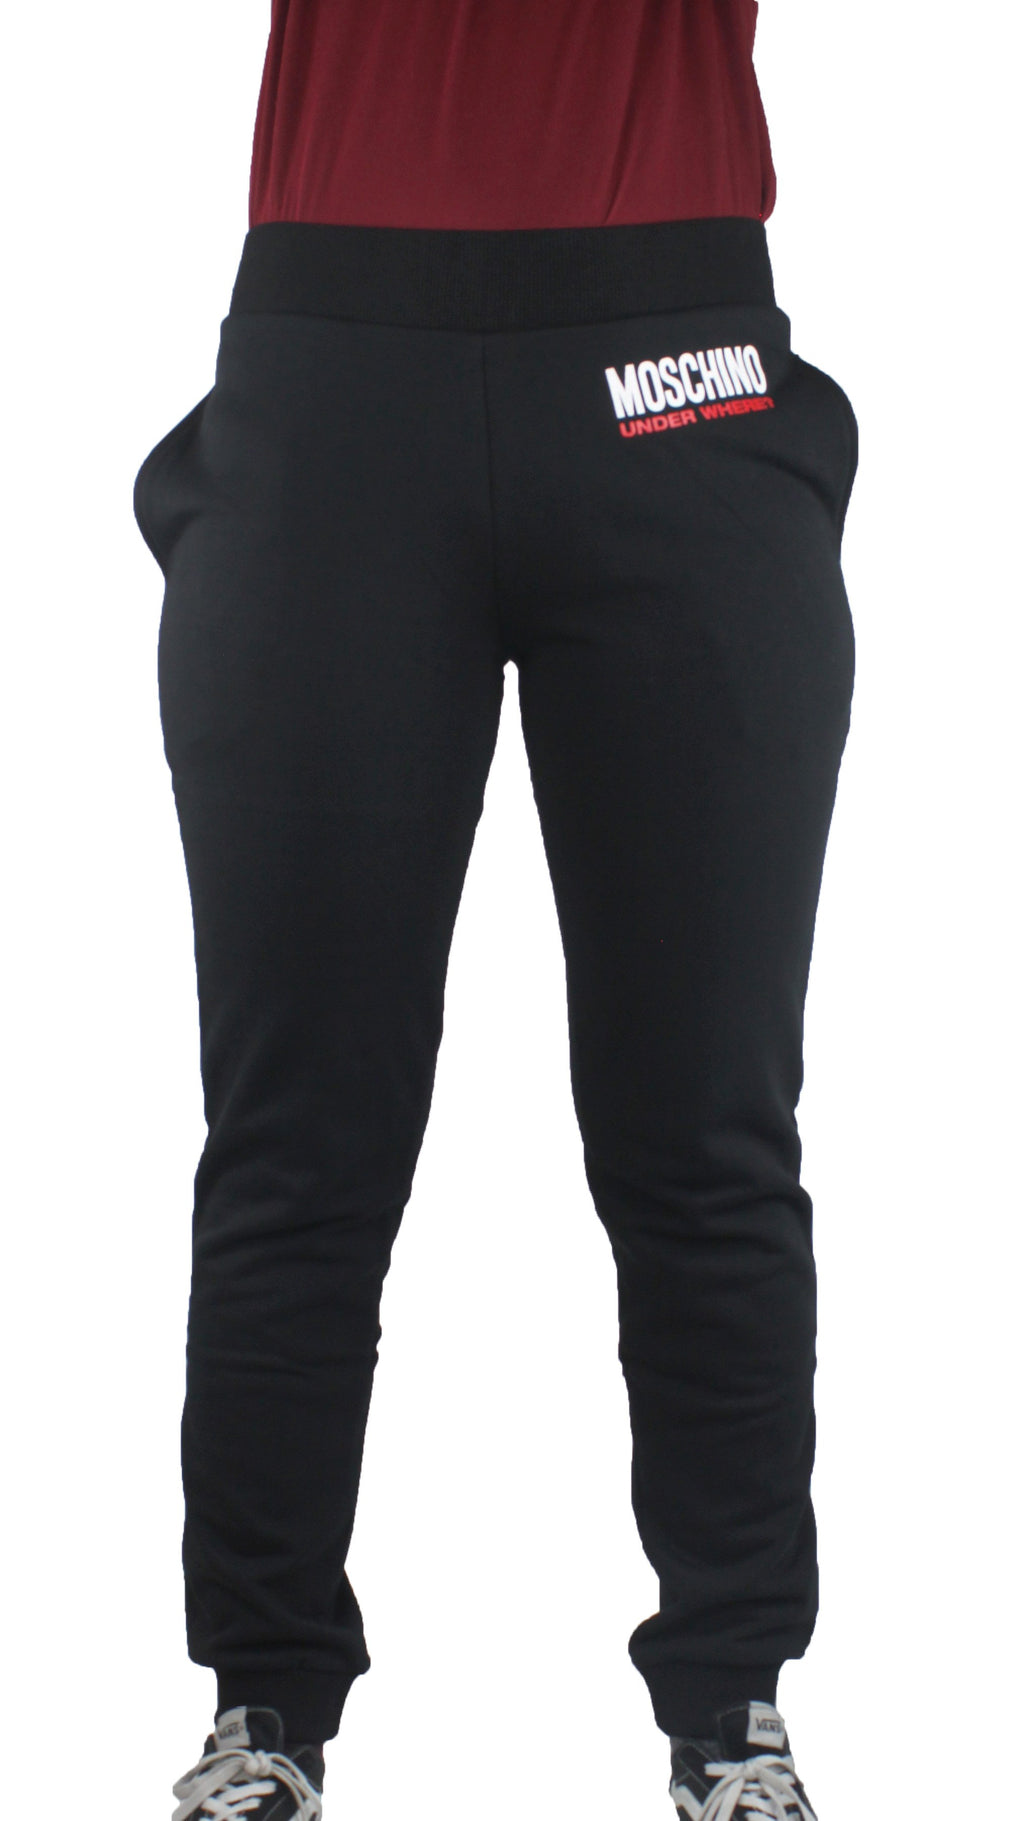 Moschino A4210 9004 0555 Sweat Pants - Wholesale Designer Clothing